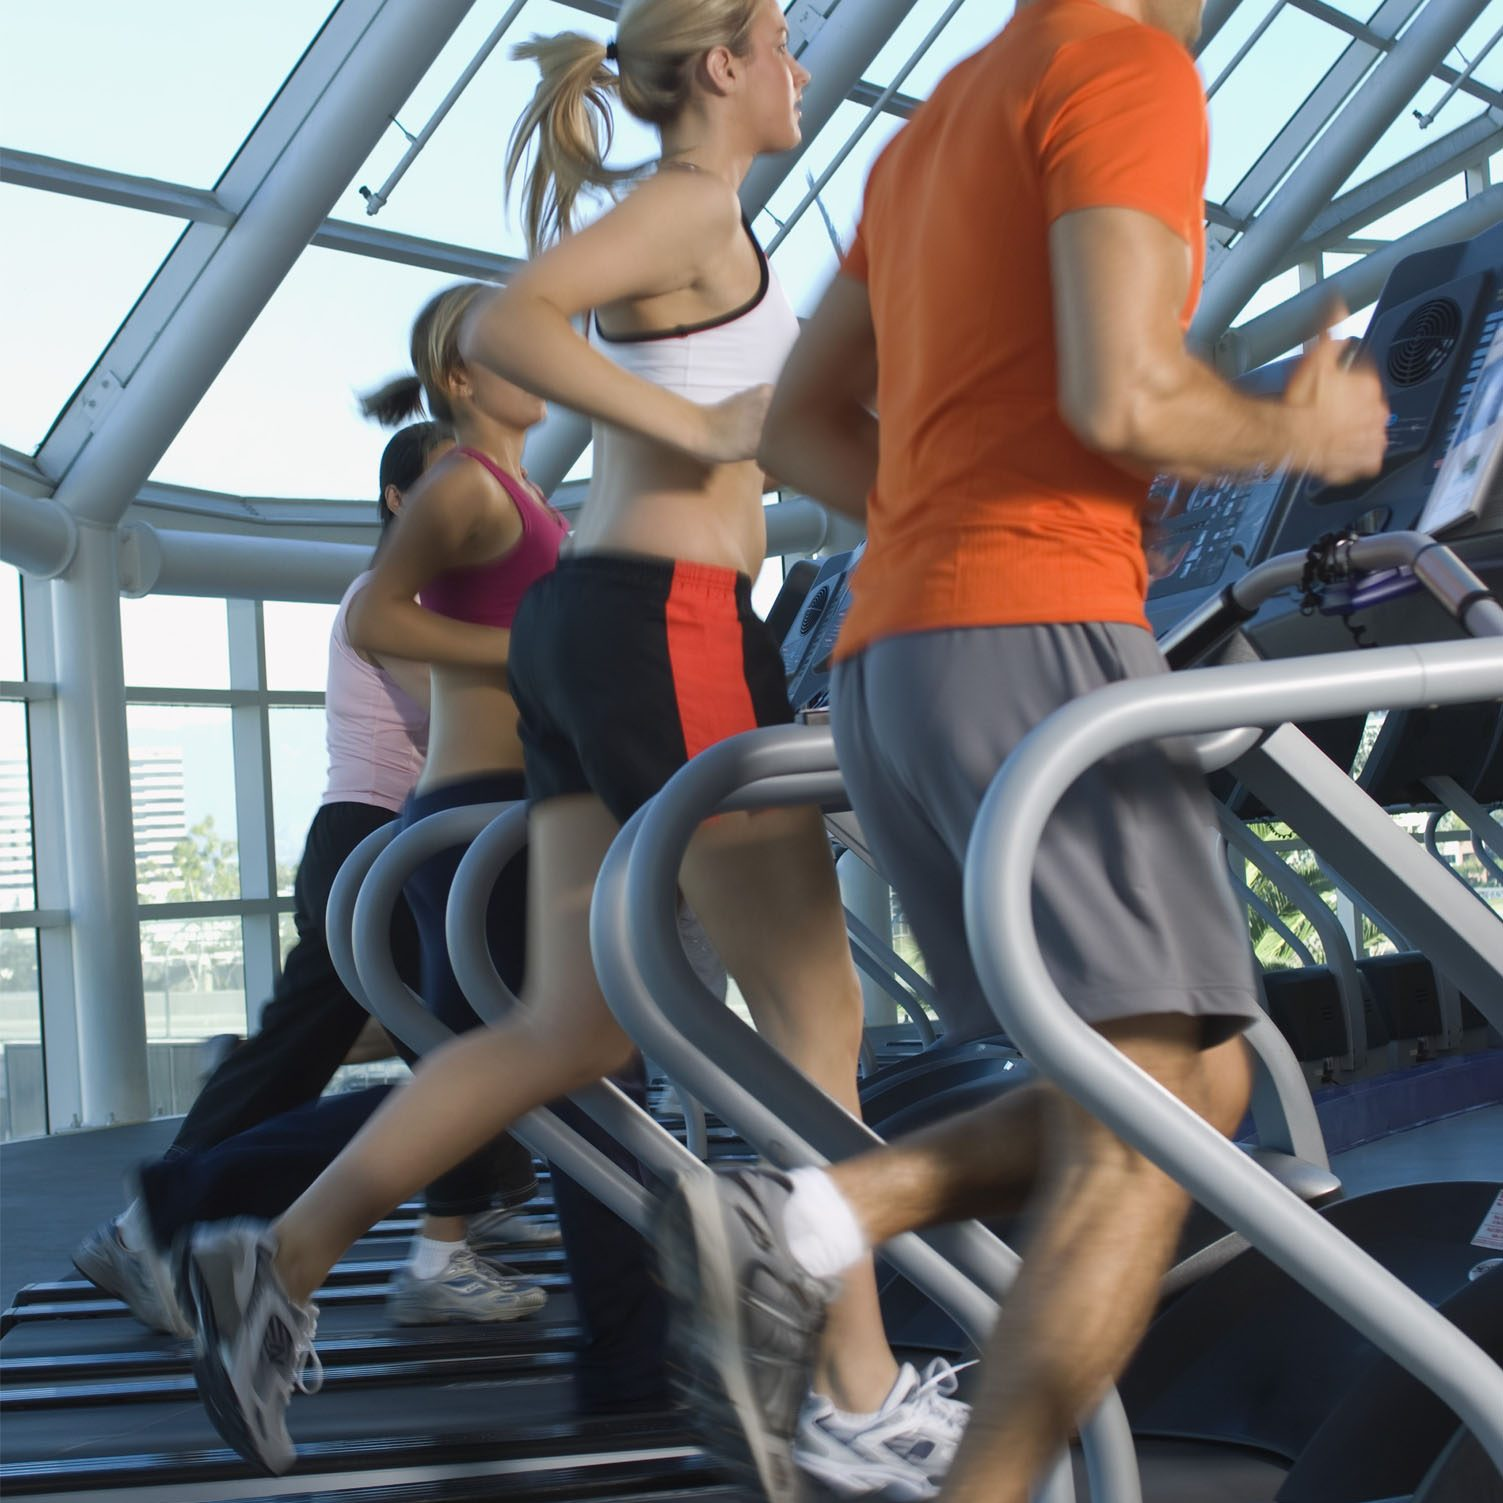 Joggers on Treadmills in Gym